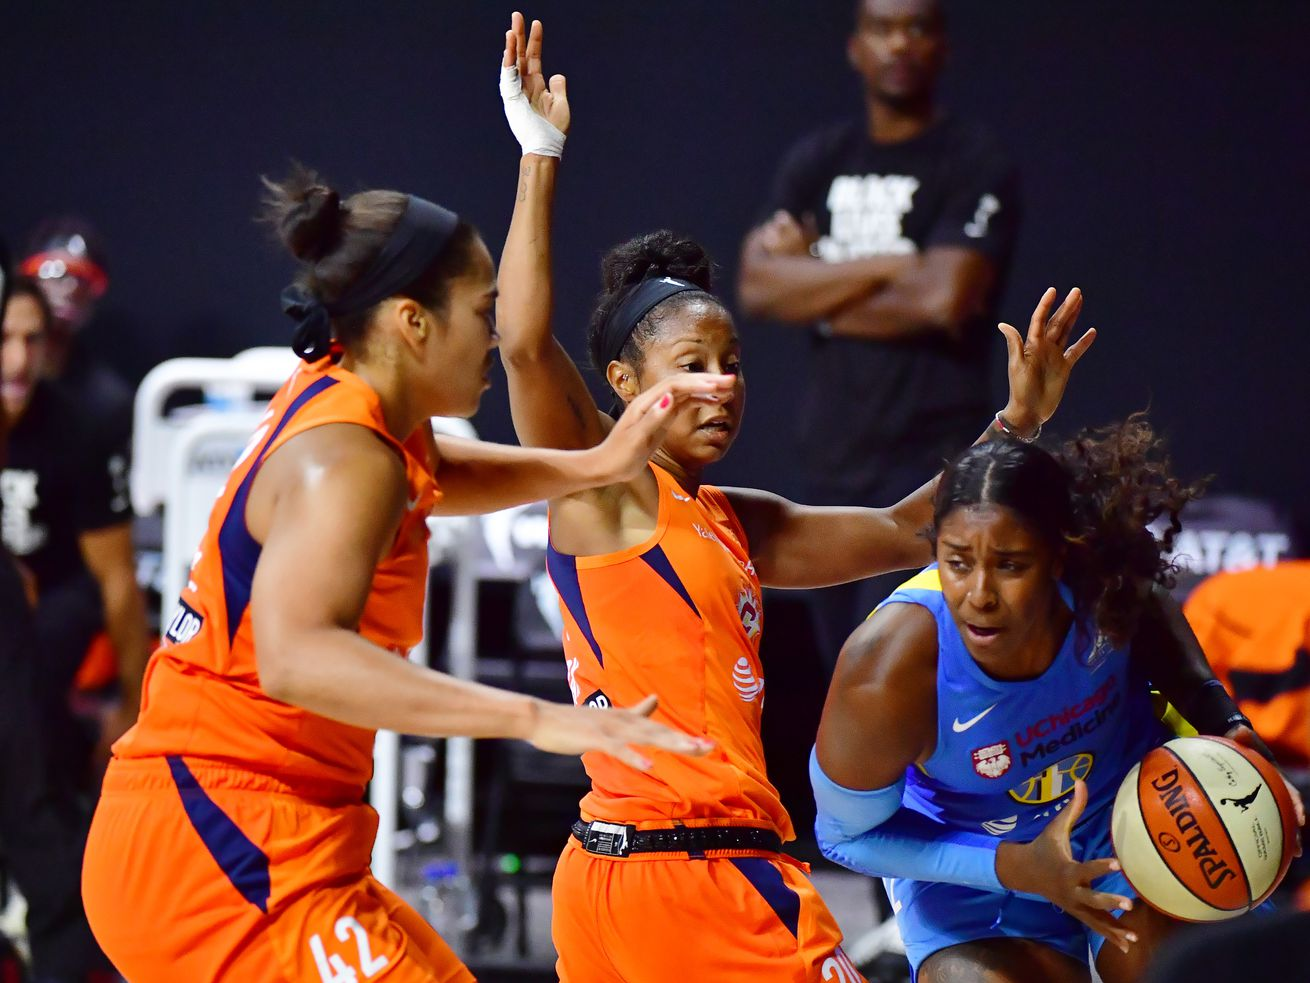 Sky knocked out of WNBA playoffs in first round by Sun